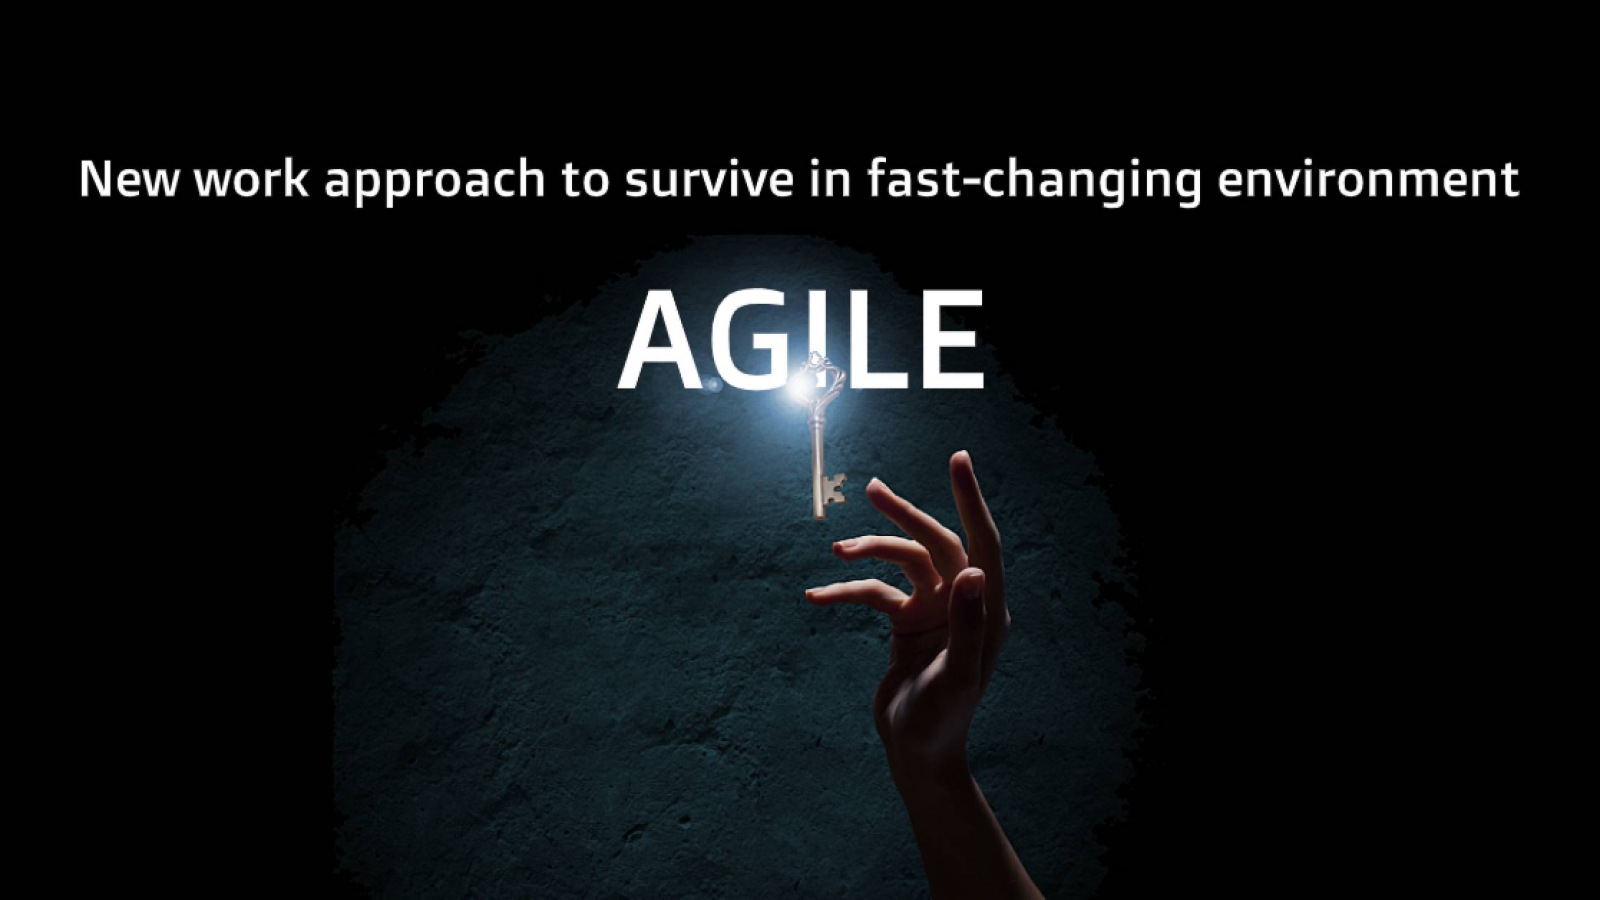 New work approach to survive in fast-changing environment-agile (2) (1)